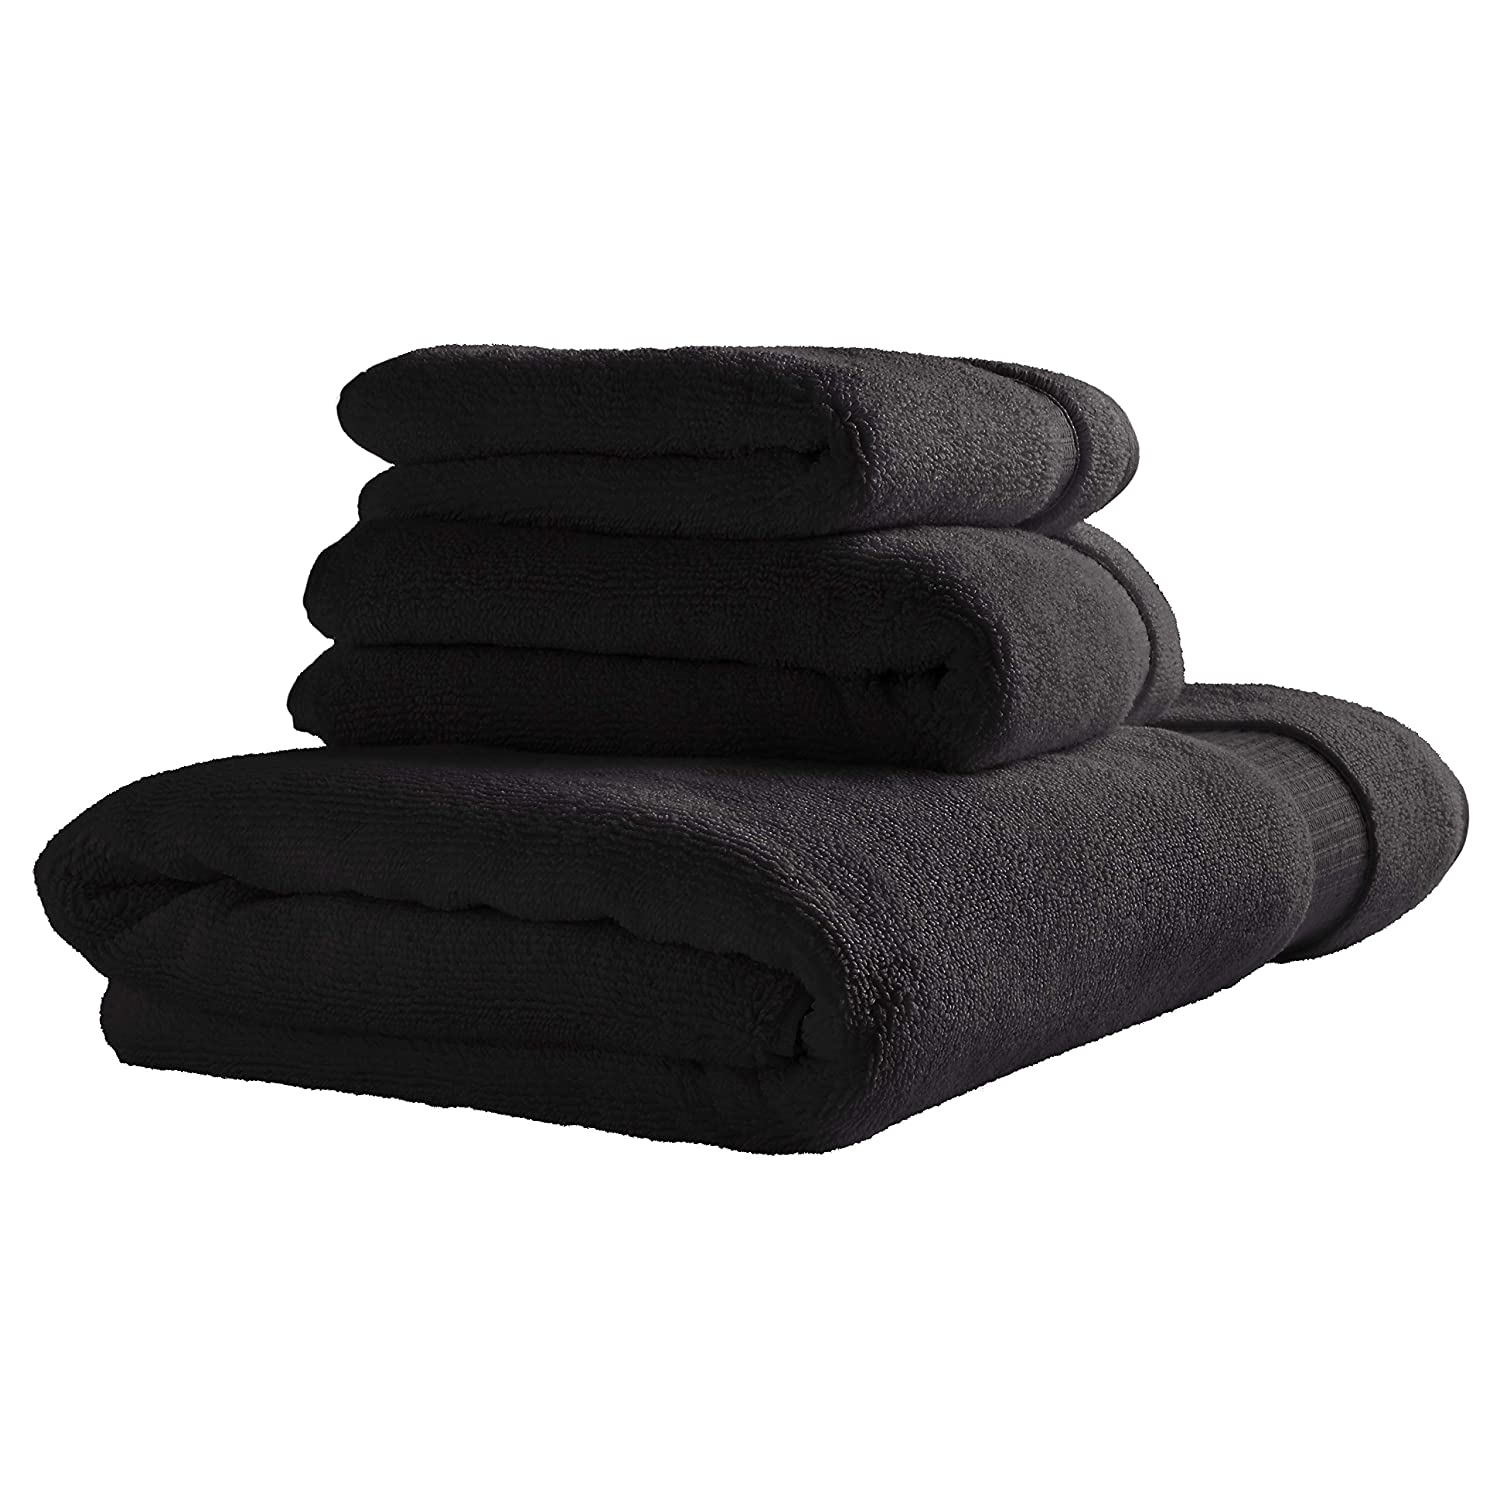 Rivet - Black Luxury Bath Towels